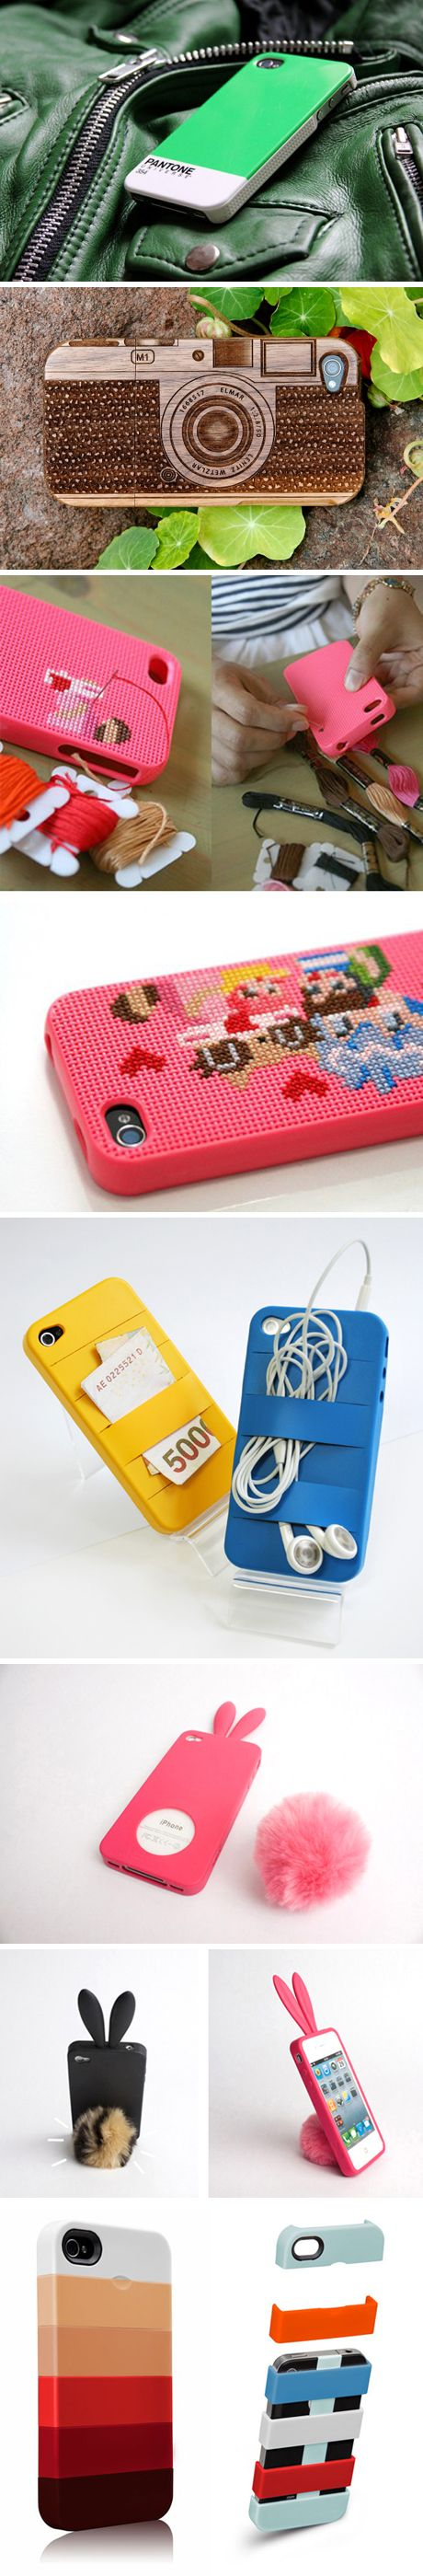 Phone cases. I want the bunny ear ones